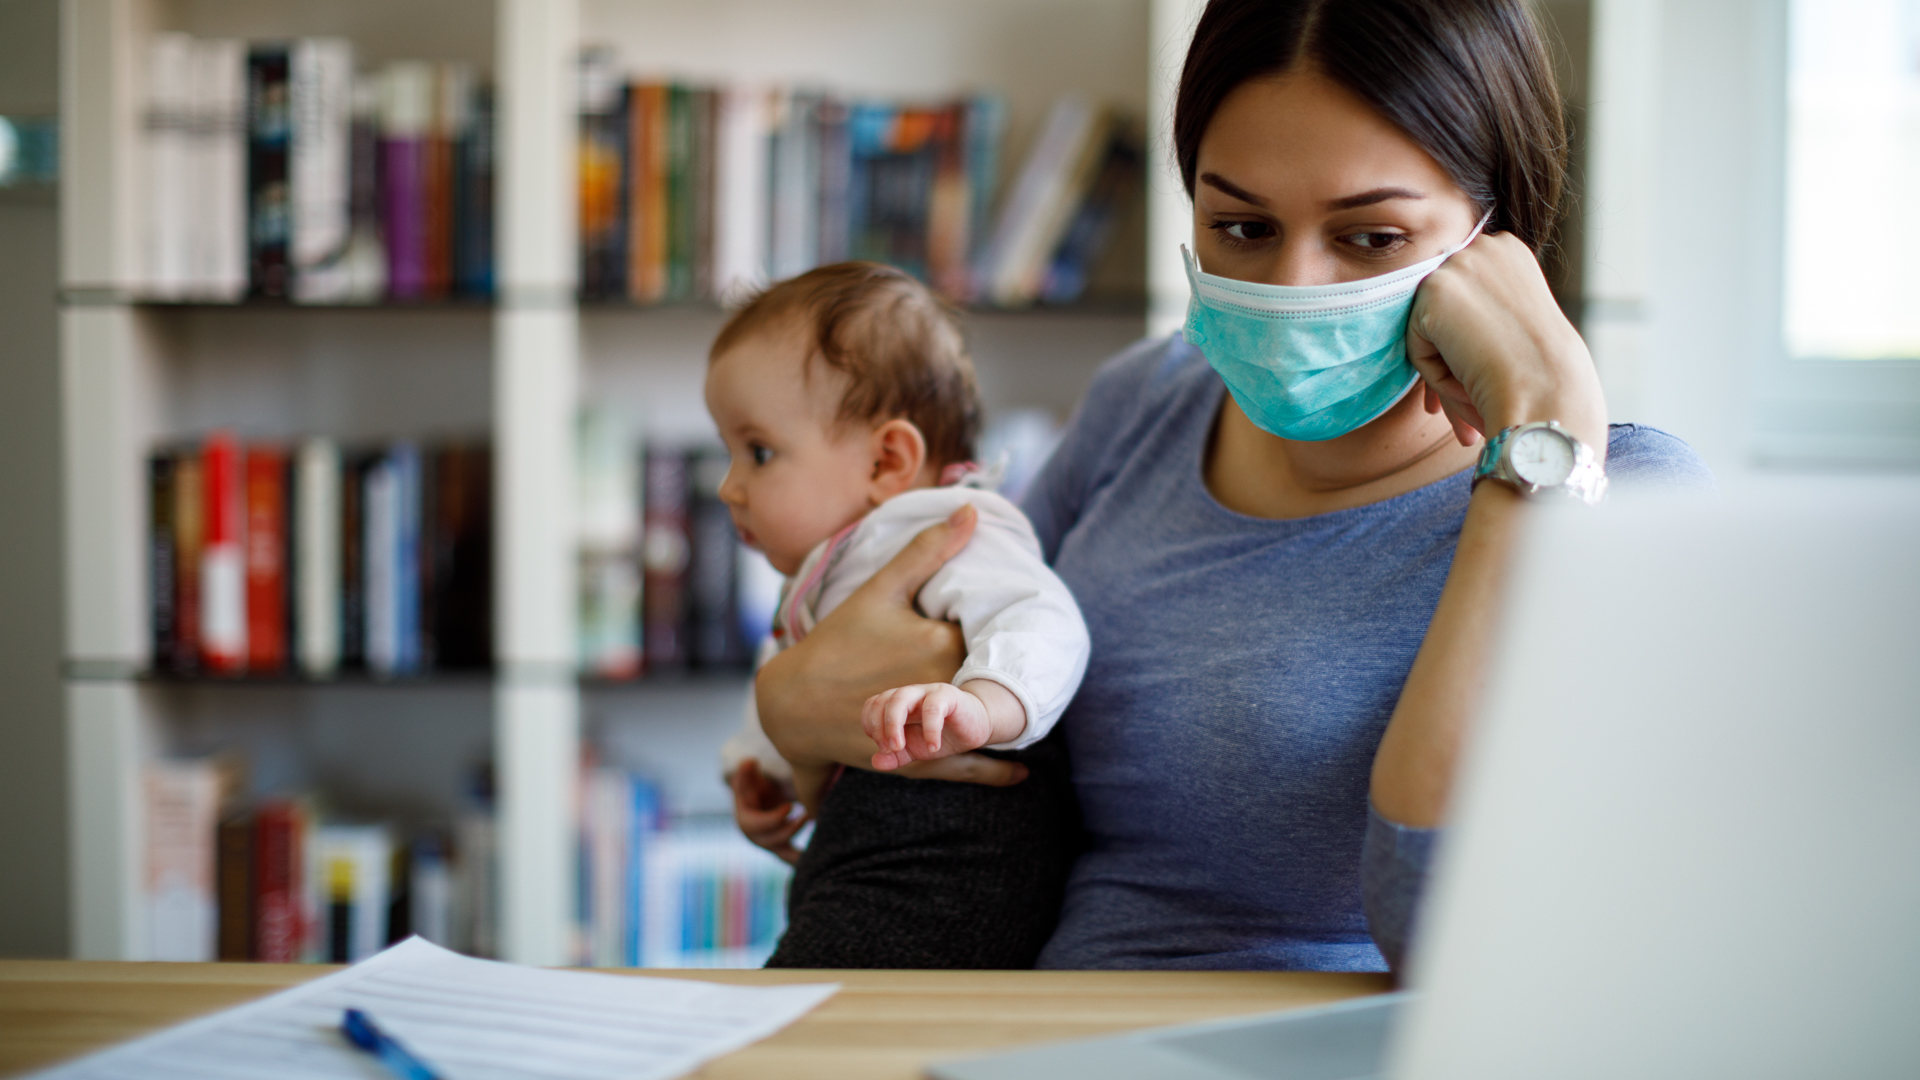 Worried mother with face protective mask working from home.